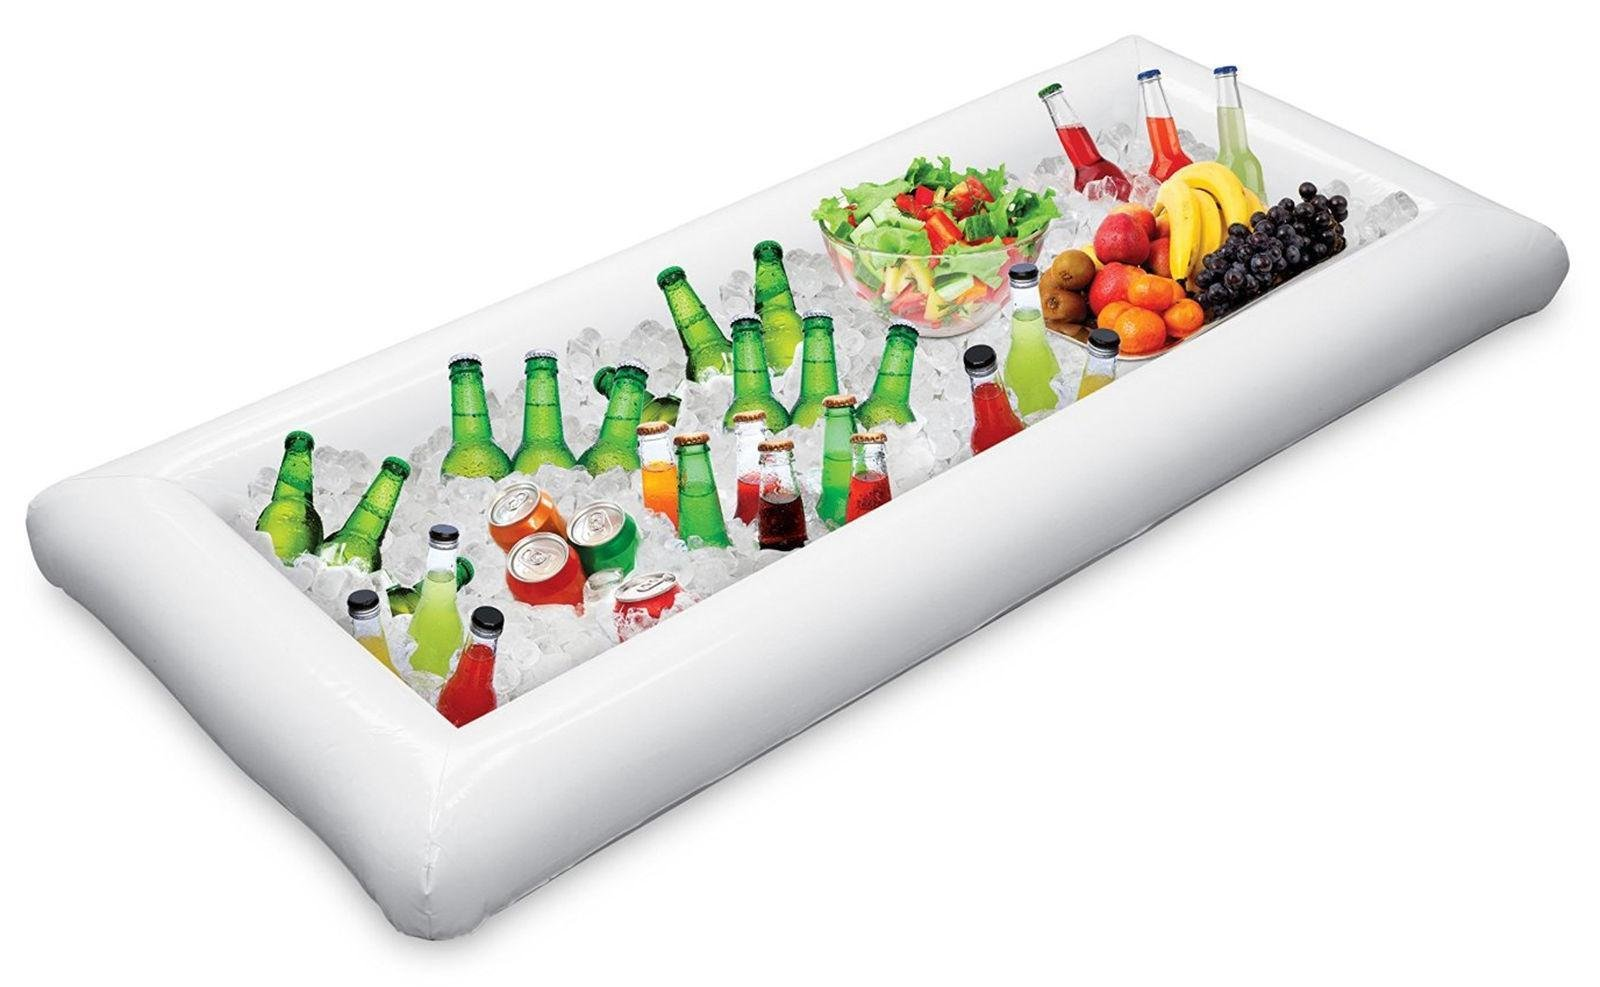 Inflatable Serving Bar Salad Buffet Ice Cooler Picnic Drink Table Party Camping by rungrueng